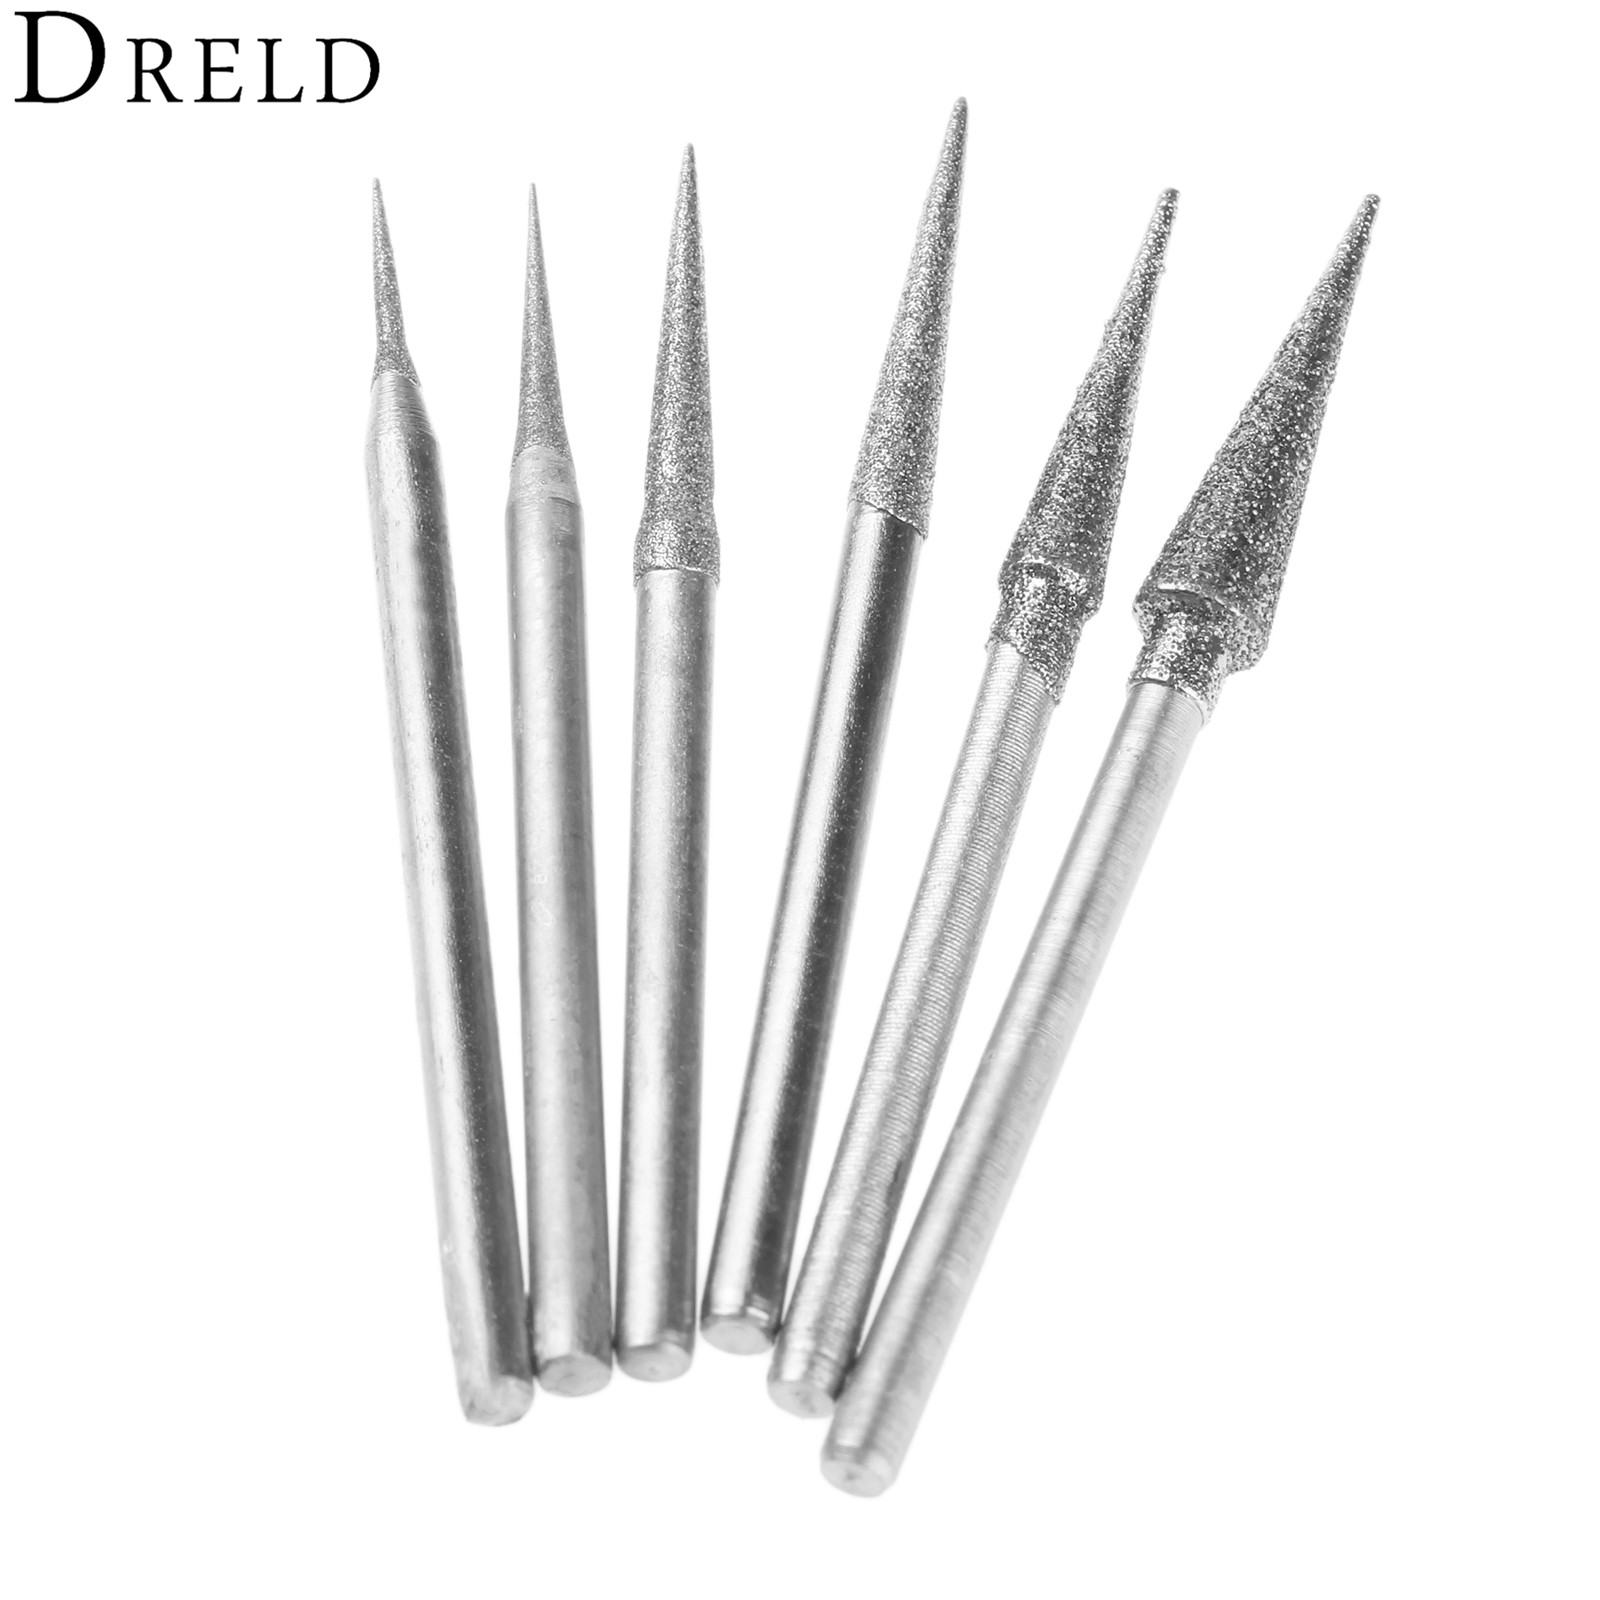 DRELD 6Pcs 1-4mm Diamond Grinding Head Grinding Needle Bits Burrs Metal Stone Jade Engraving Carving Tools 2.35mm Shank D Needle